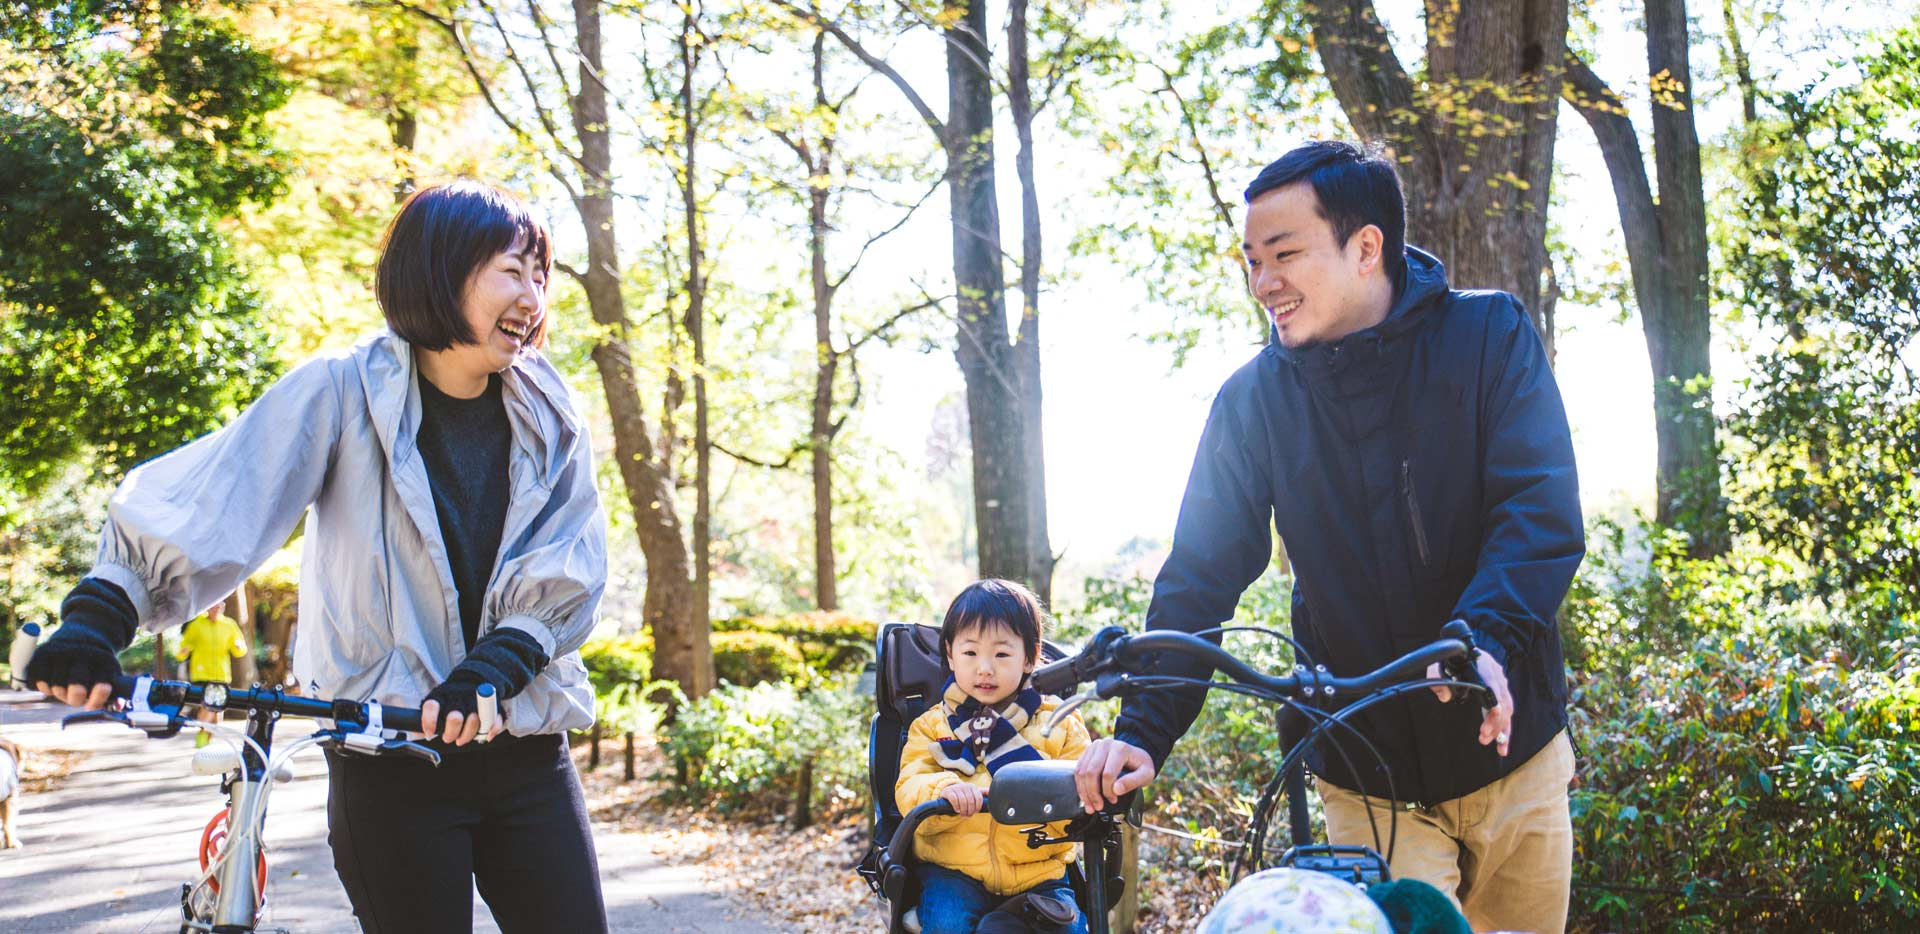 Family of three walking bikes on a wooded trails